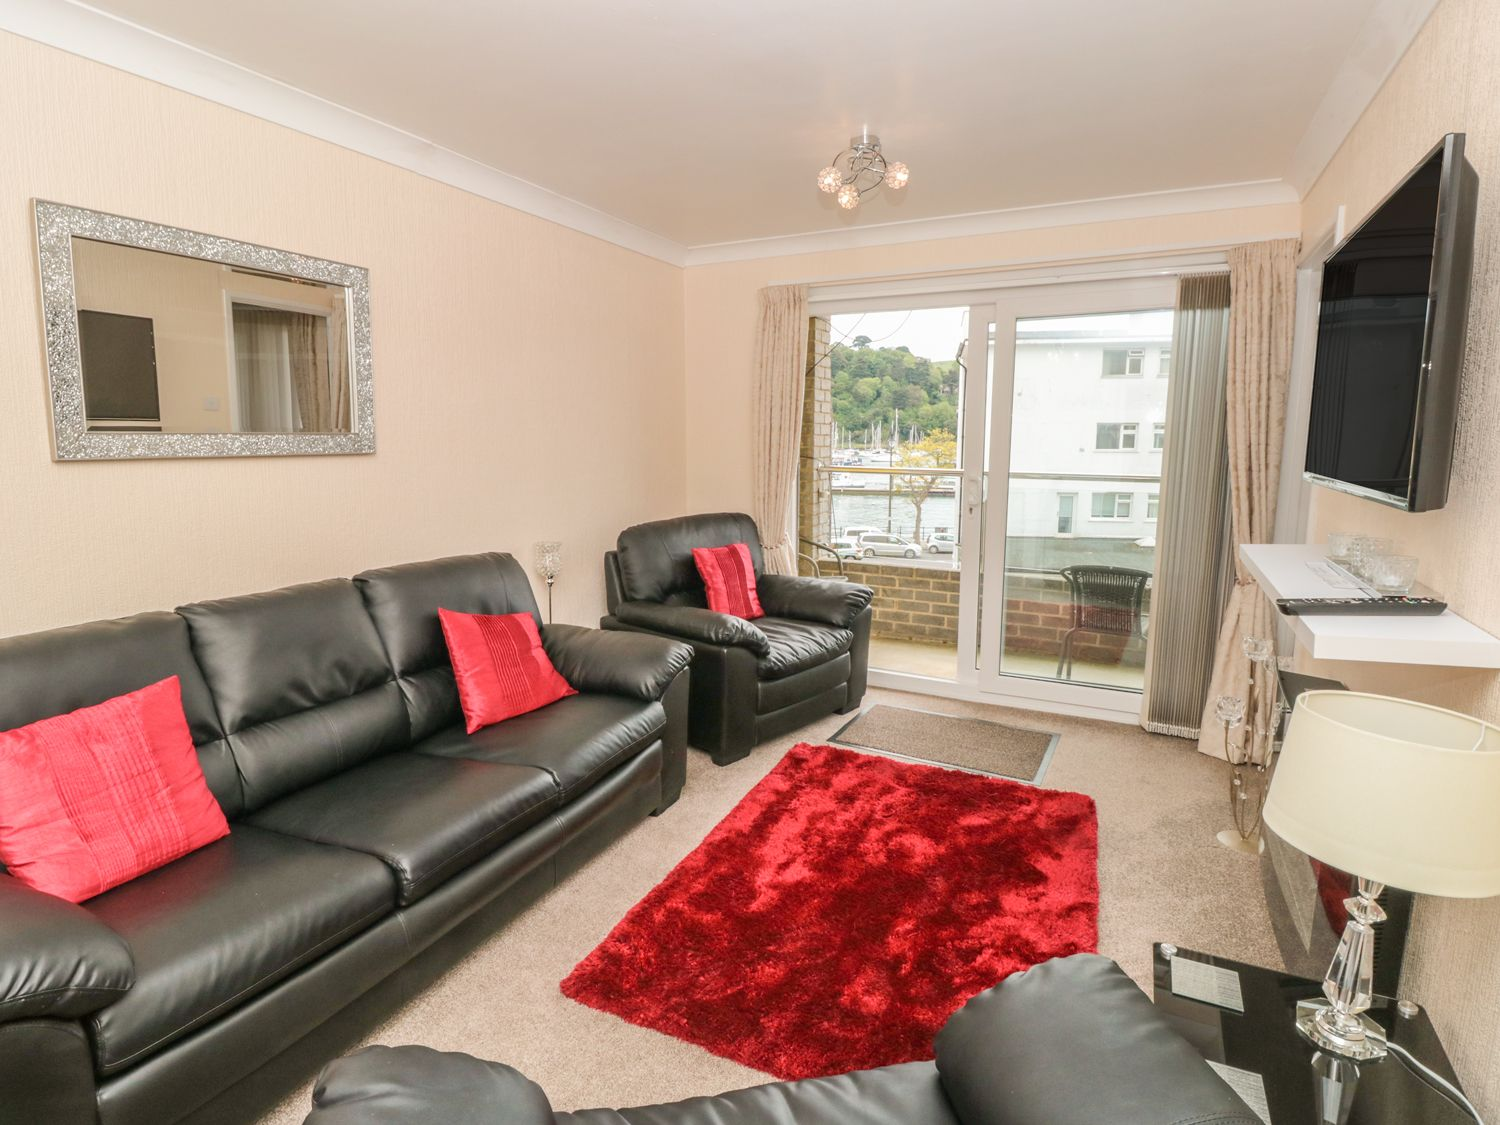 5 Dartside Court - Devon - 1011574 - photo 1